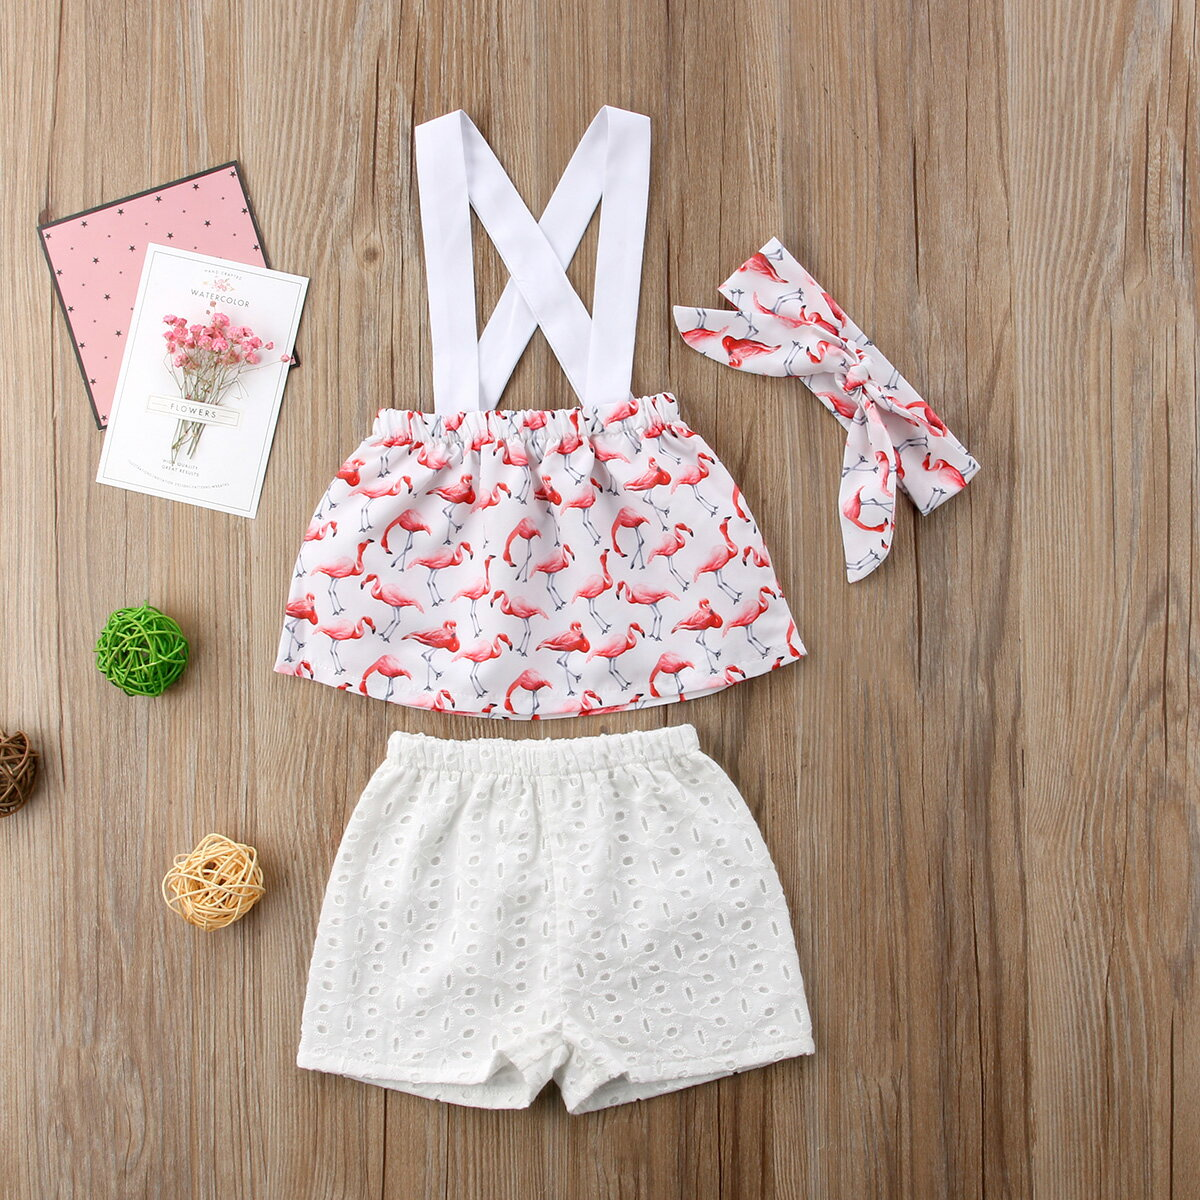 e025a0b92fb568 Summer Newborn Baby Toddler Girls Flamingo Tops Shorts 3Pcs Outfits Set  Clothes 0